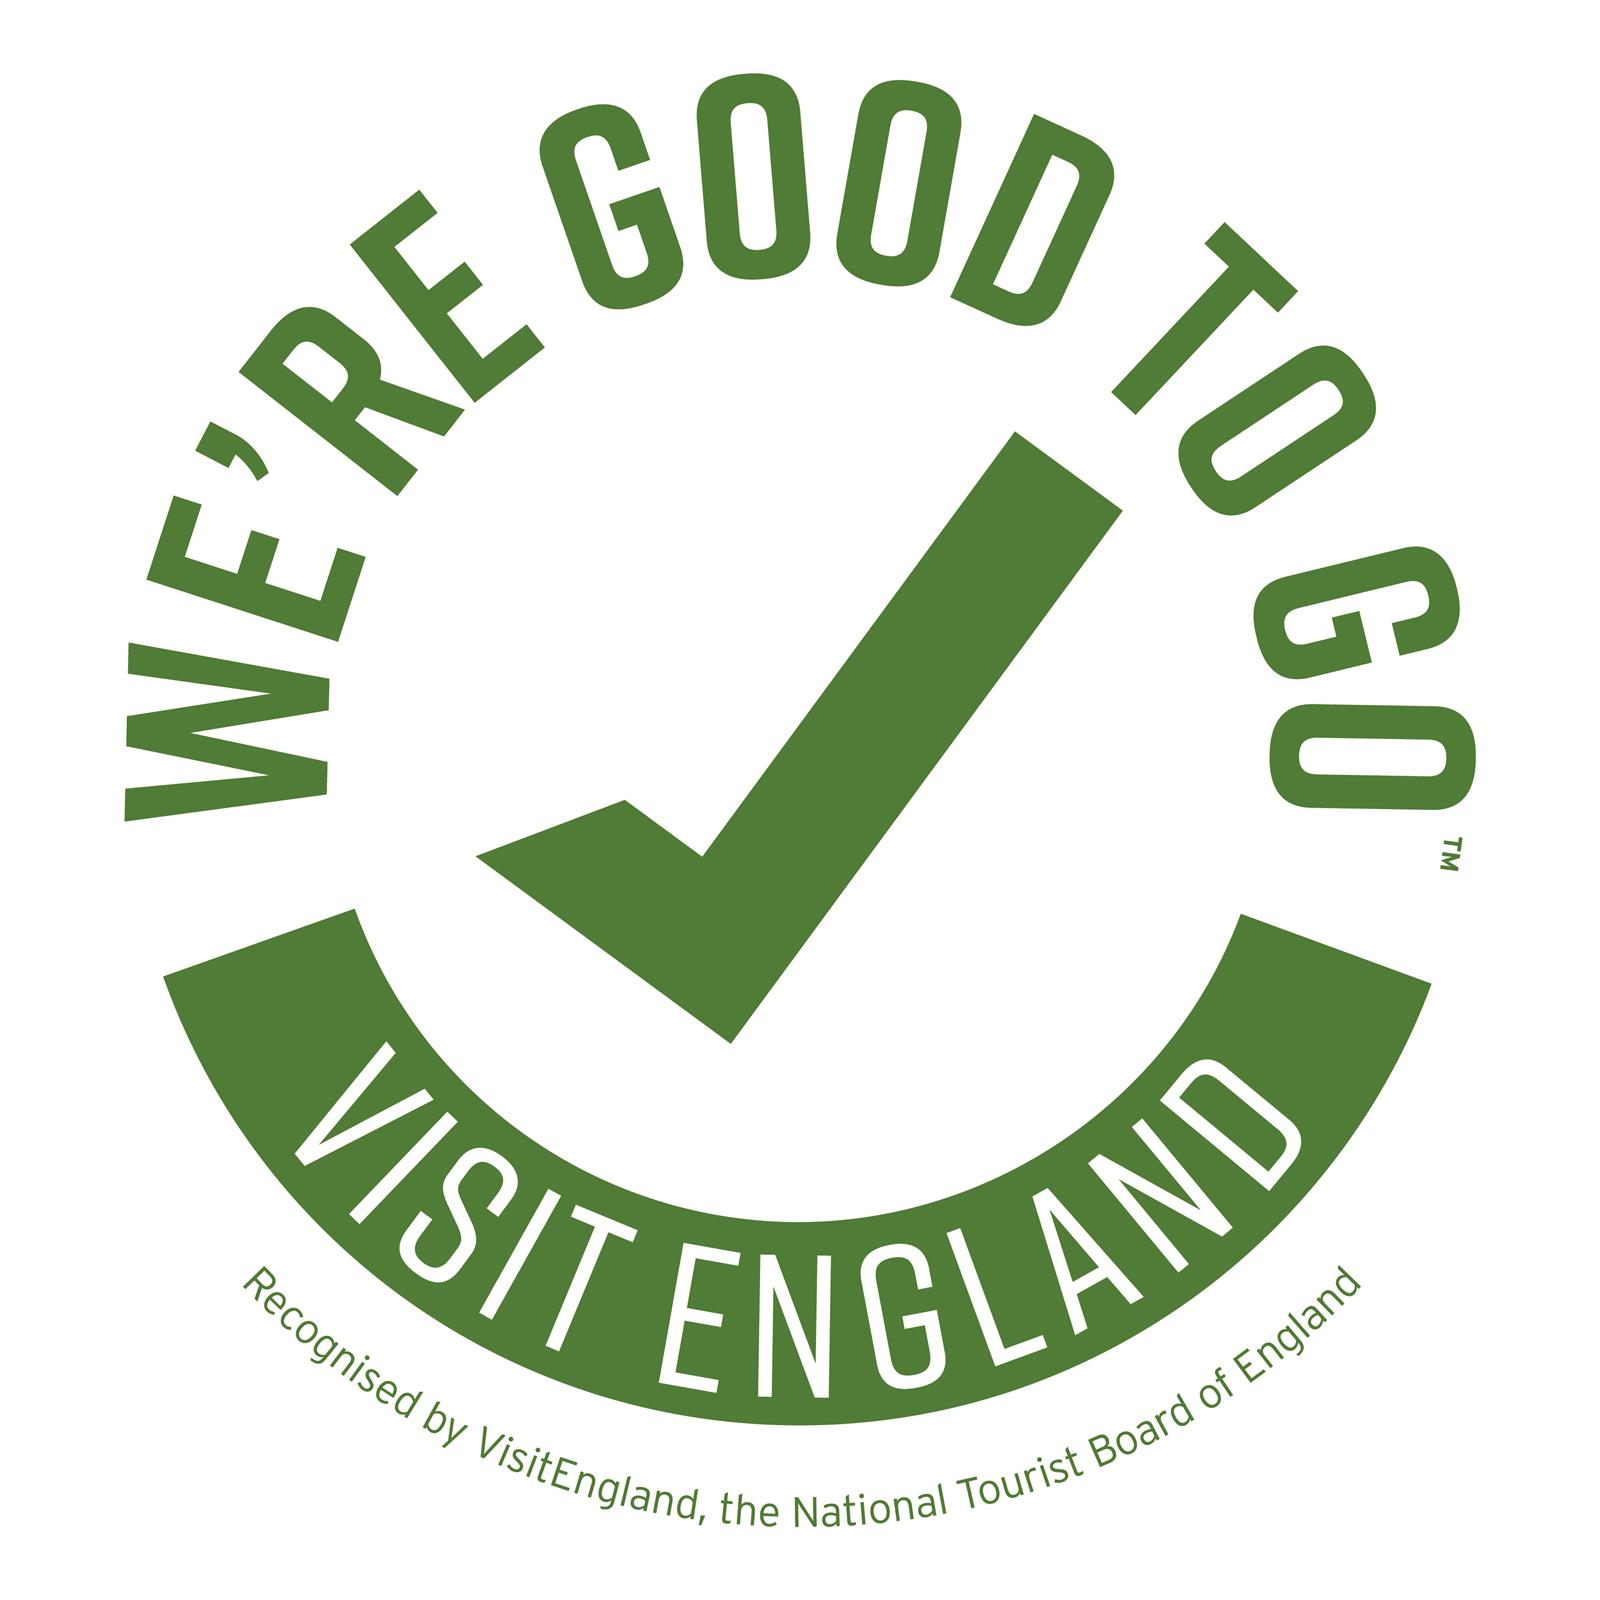 We're Good to Go - VisitEngland Covid-19 accreditation scheme